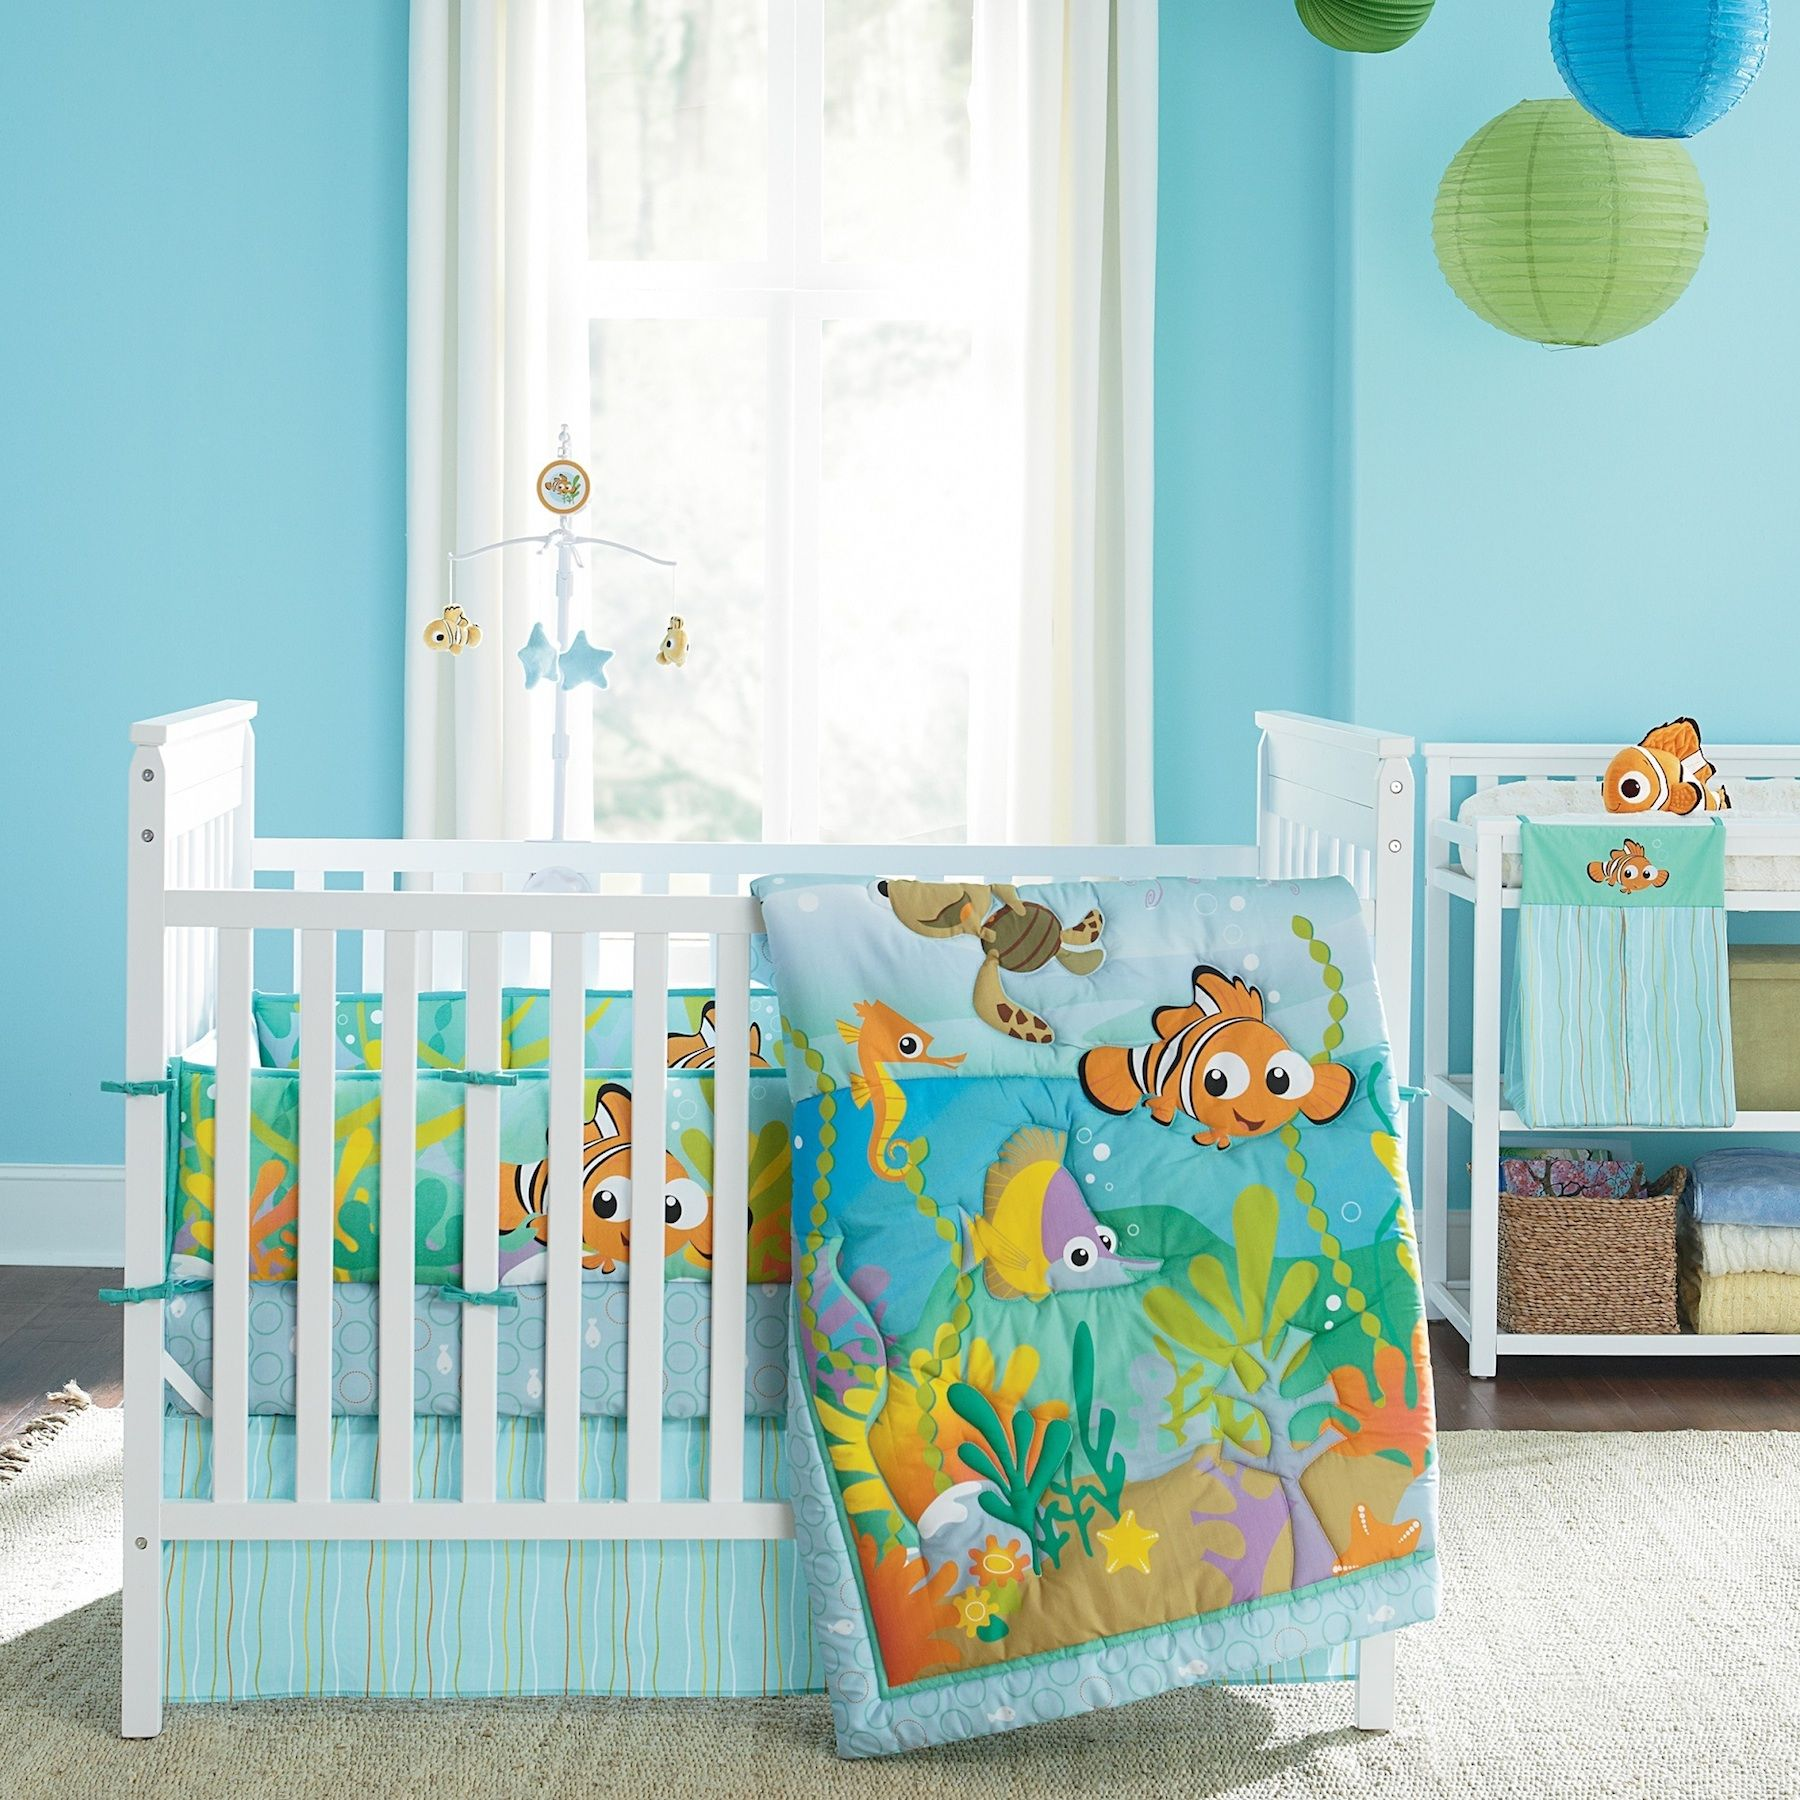 Green baby boy room decor - Baby Nursery Celebrities Baby Nursery Room You Can Get Inspired From Baby Nursery Celebrity Design With White Wooden Baby Crib Blue Wall Painted Nemo Cute